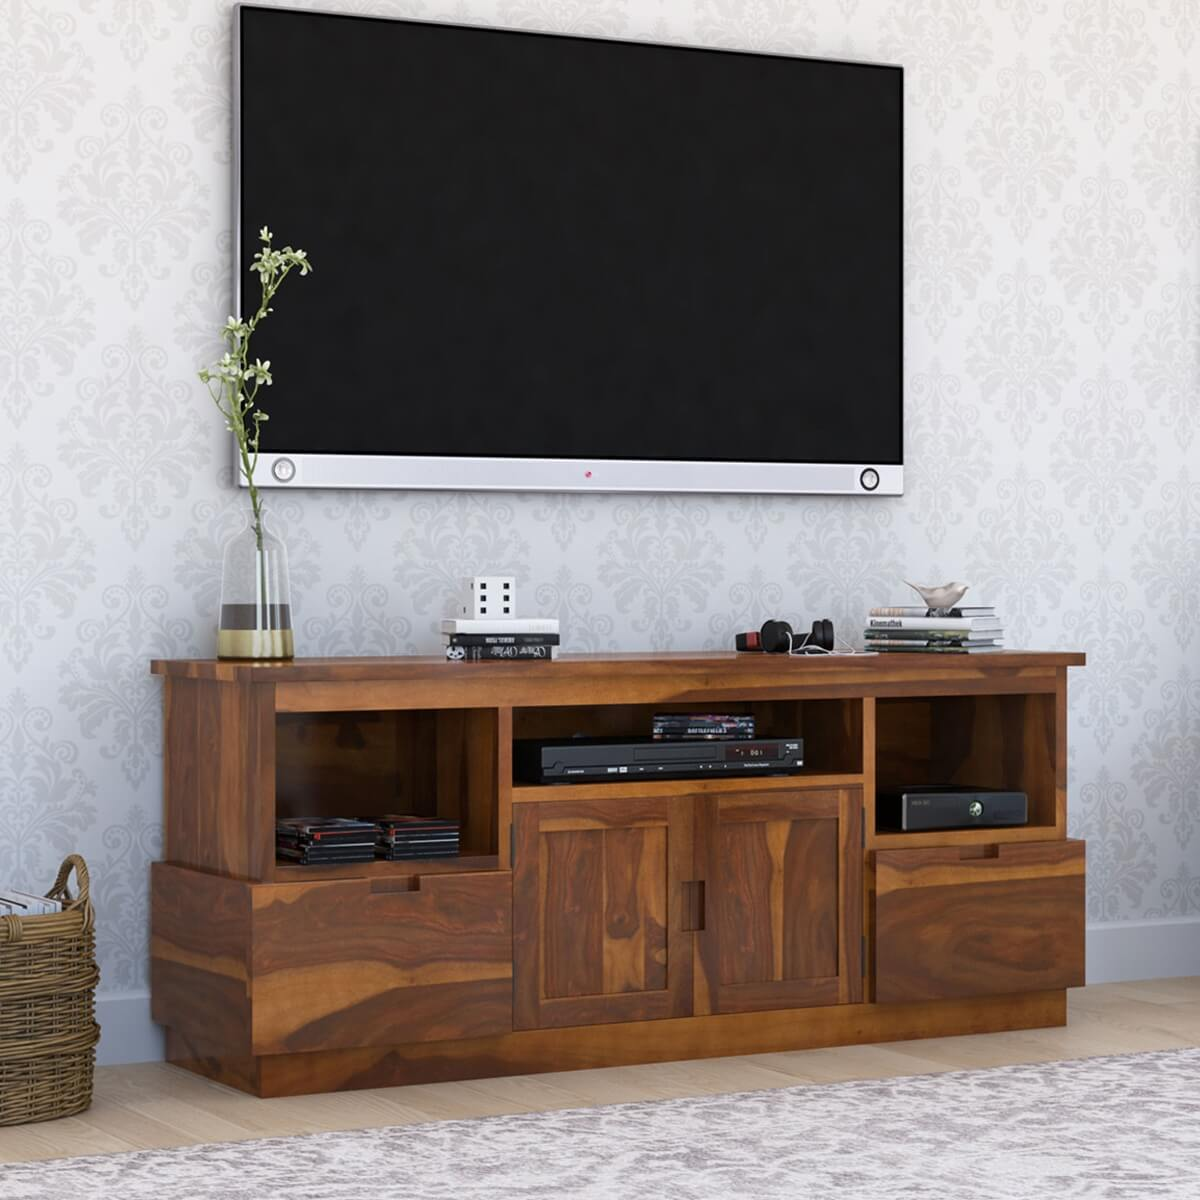 Modern Simplicity Rustic Solid Wood TV Media Stand with 2 Drawers